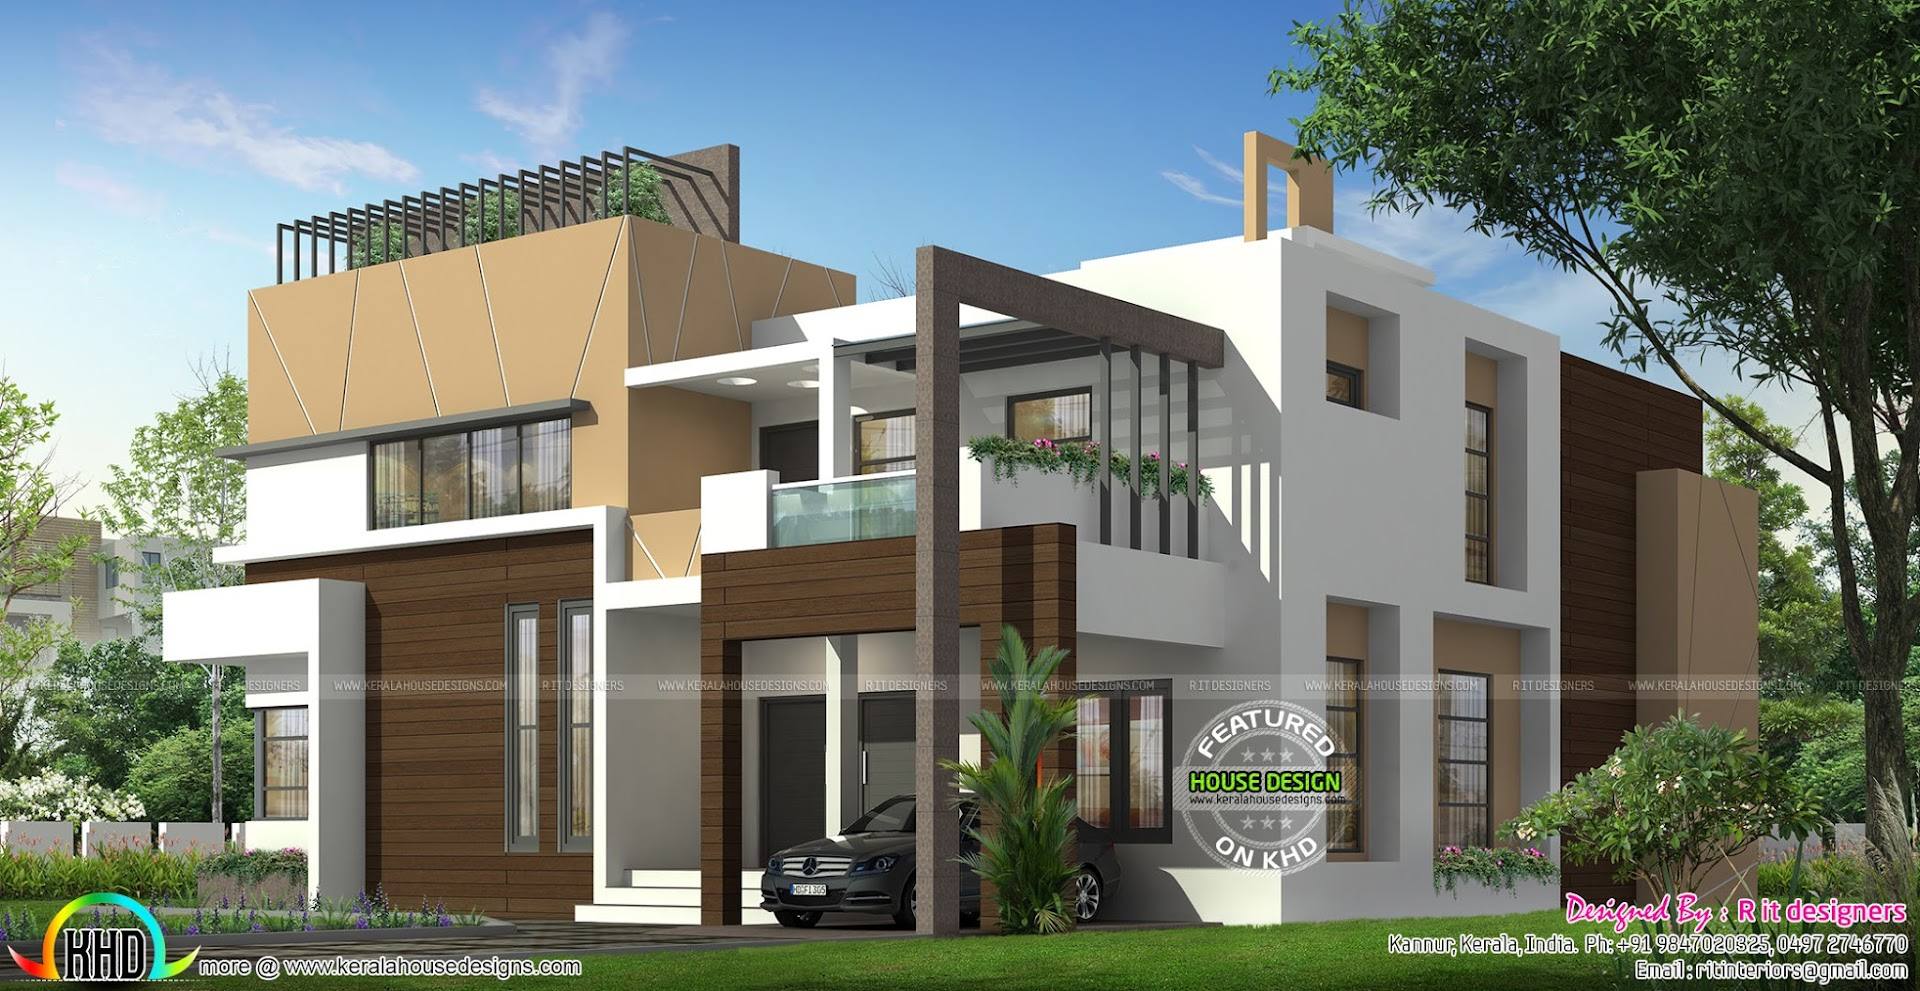 Luxurious 5 bedroom ultra modern home kerala home design for Ultra modern home plans